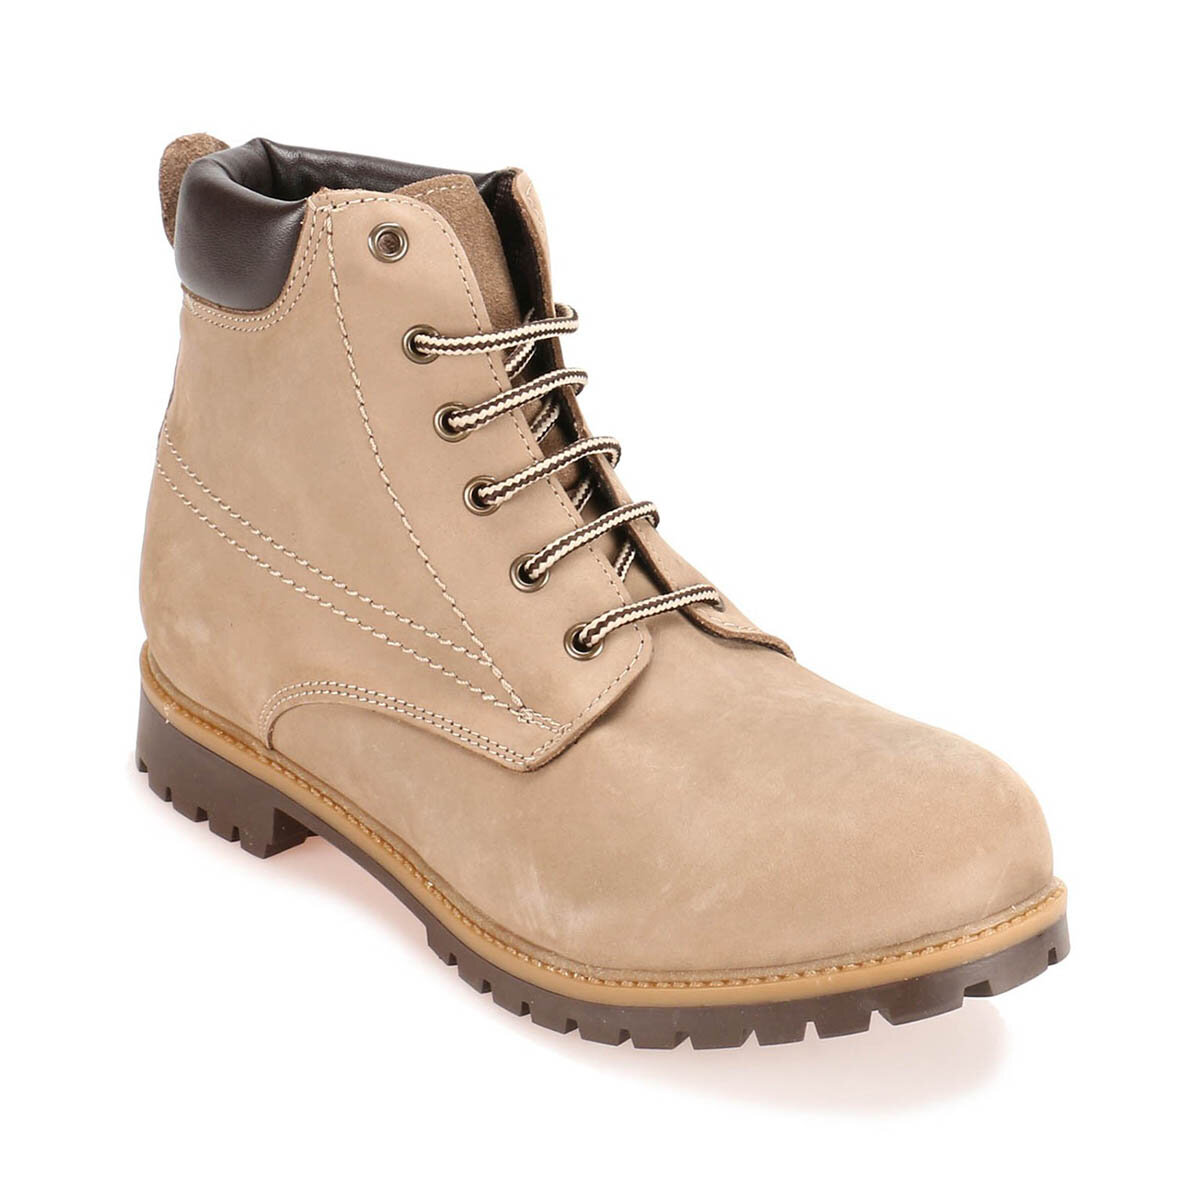 FLO CRM-1 M 1450 Sand Color Men Boots Panama Club